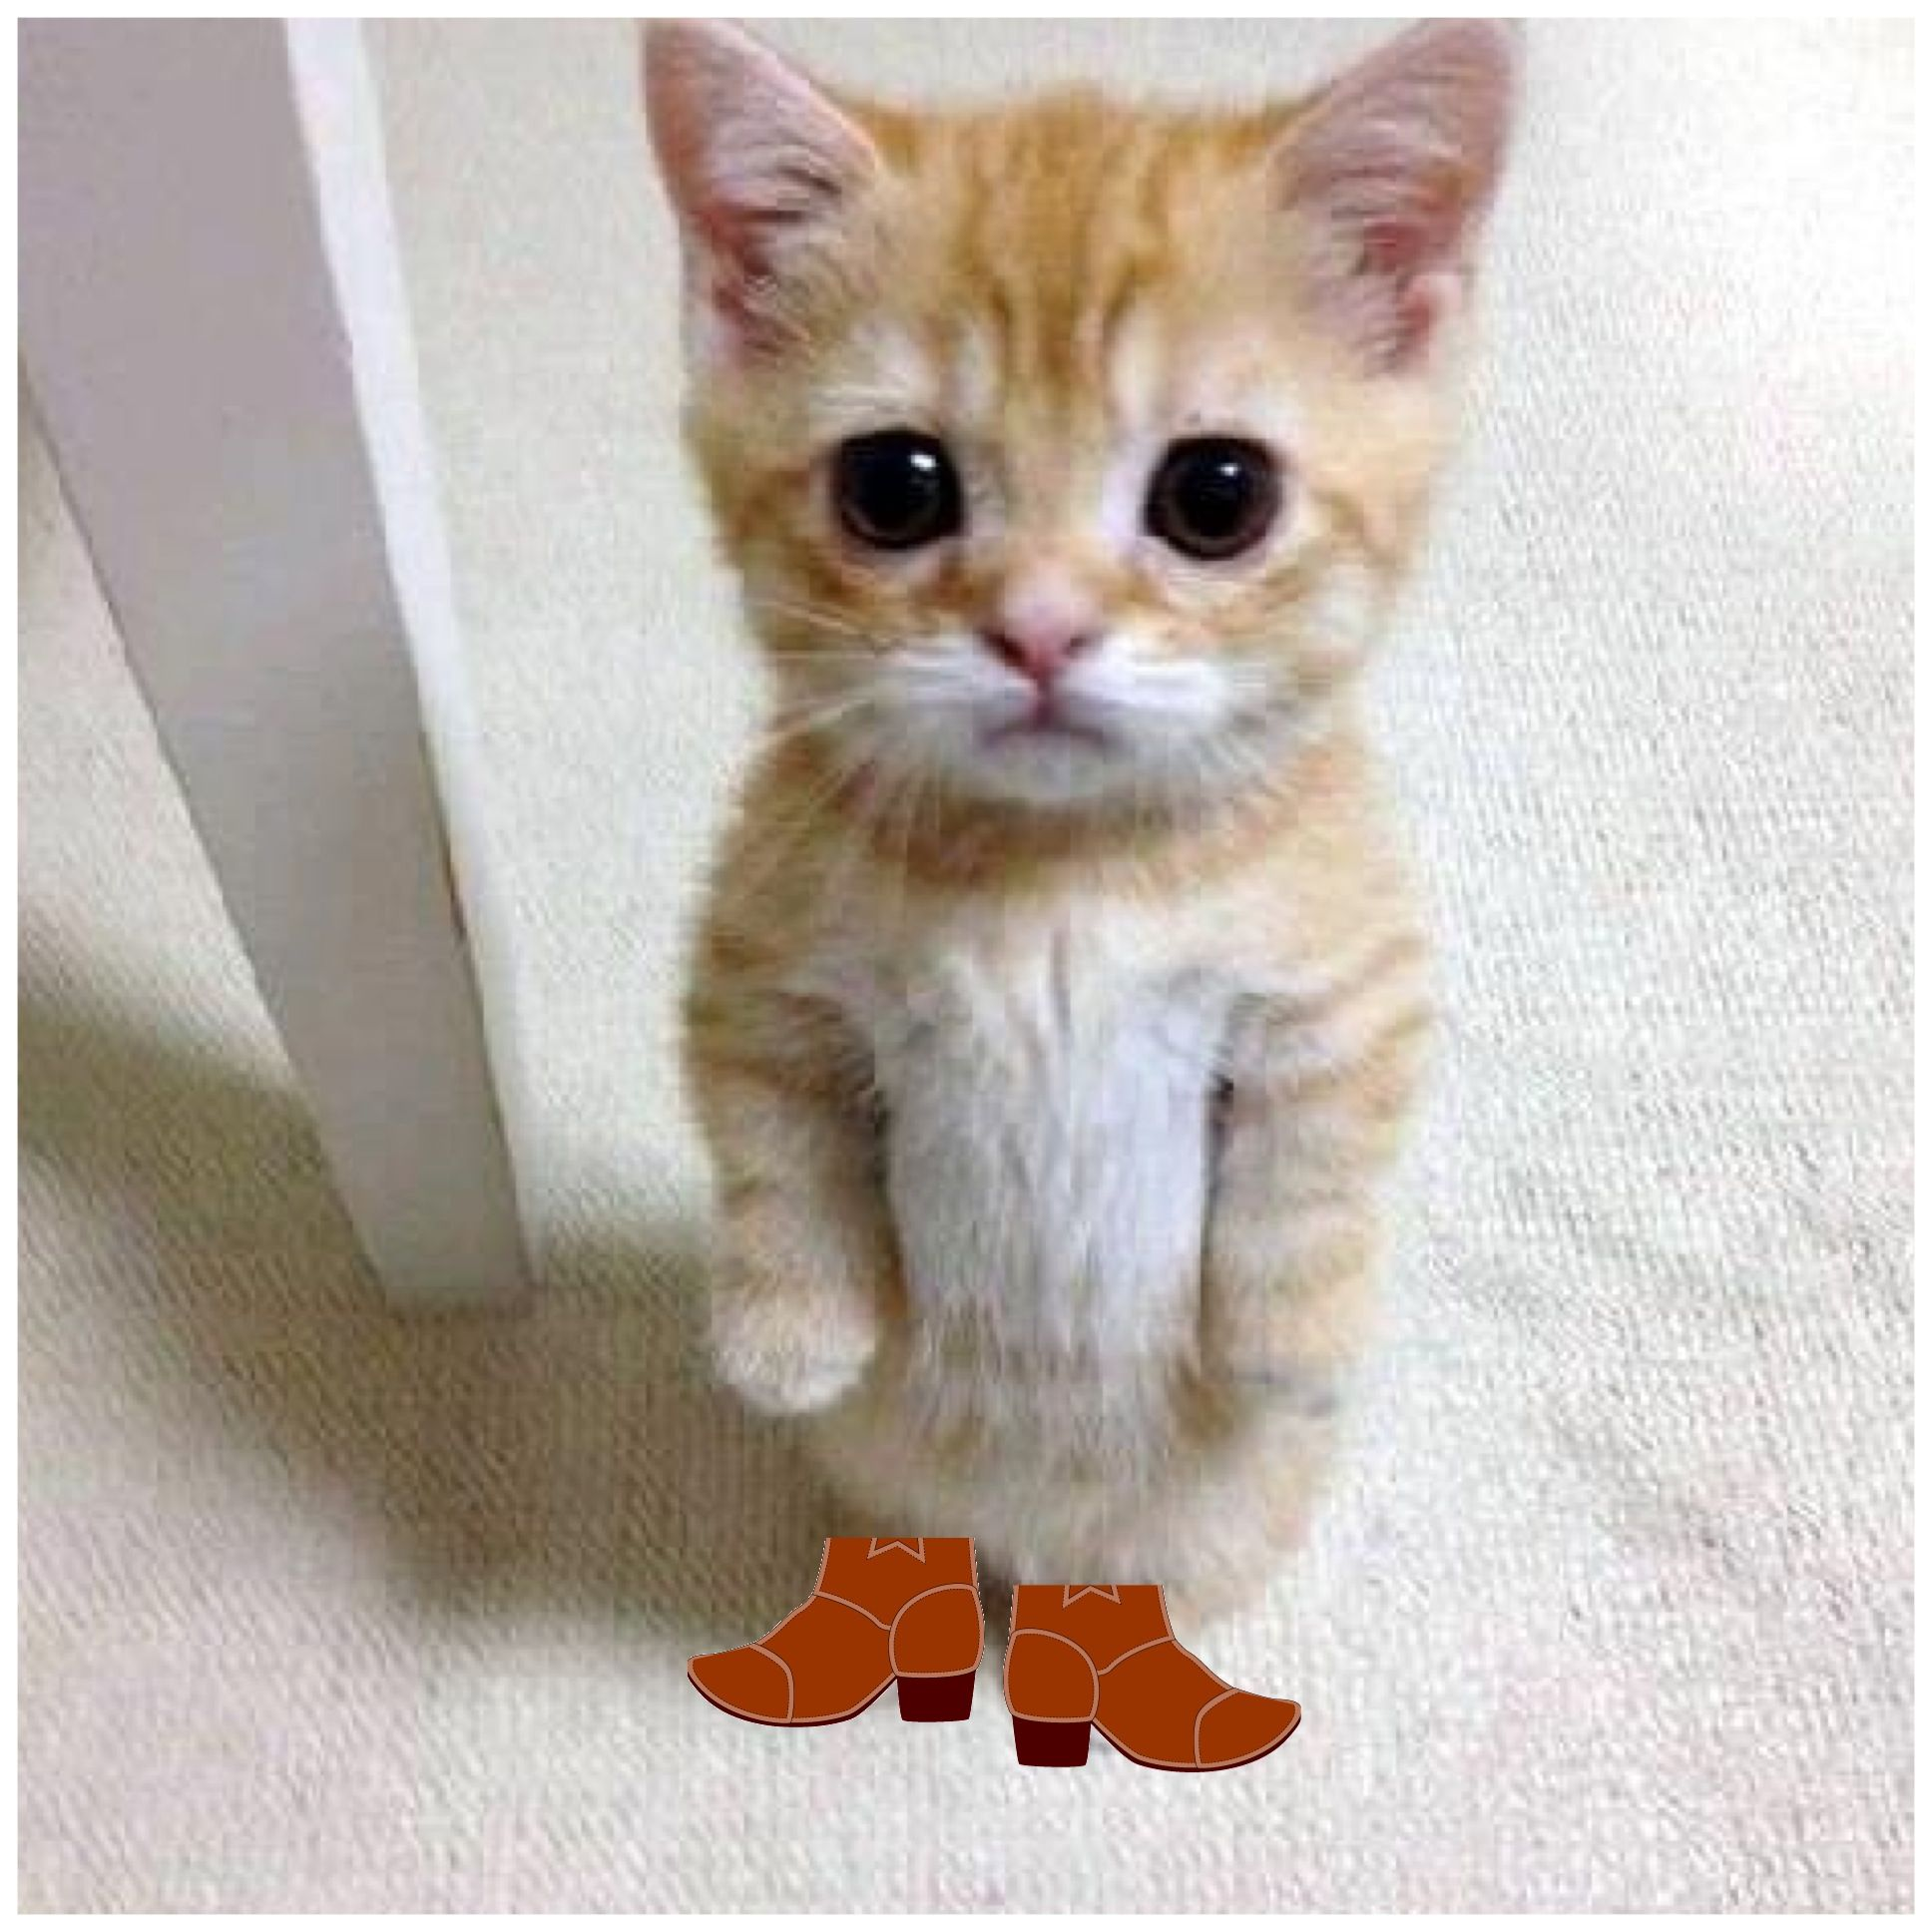 Puss and Boots Lol